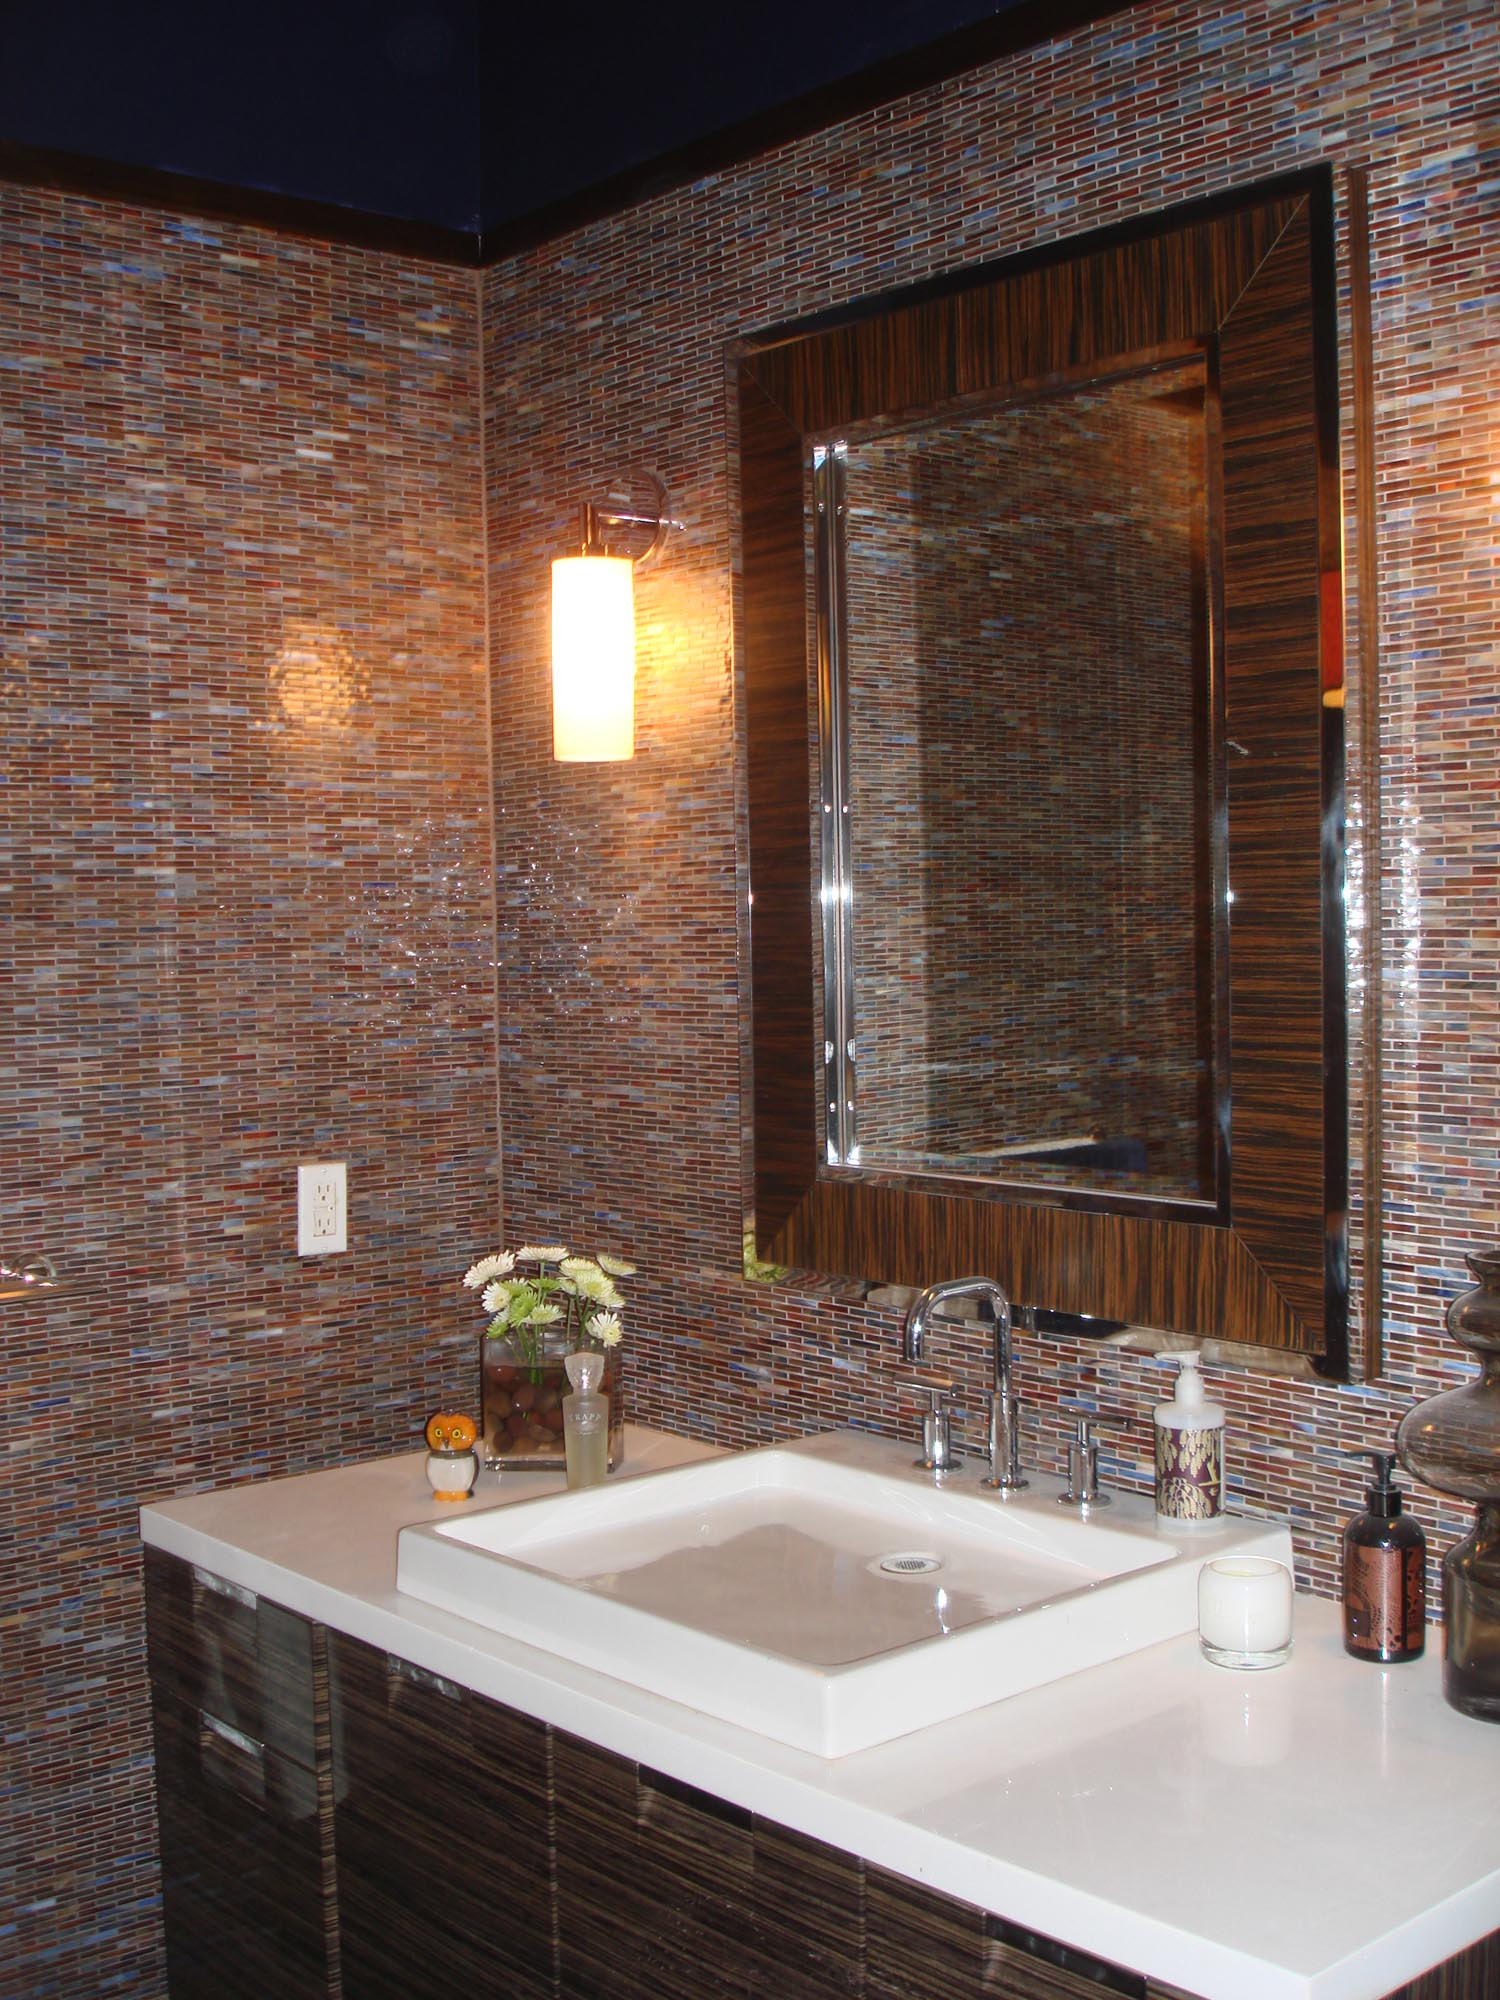 glass-mossaic-tile-bathroom-steam-shower-and-niche